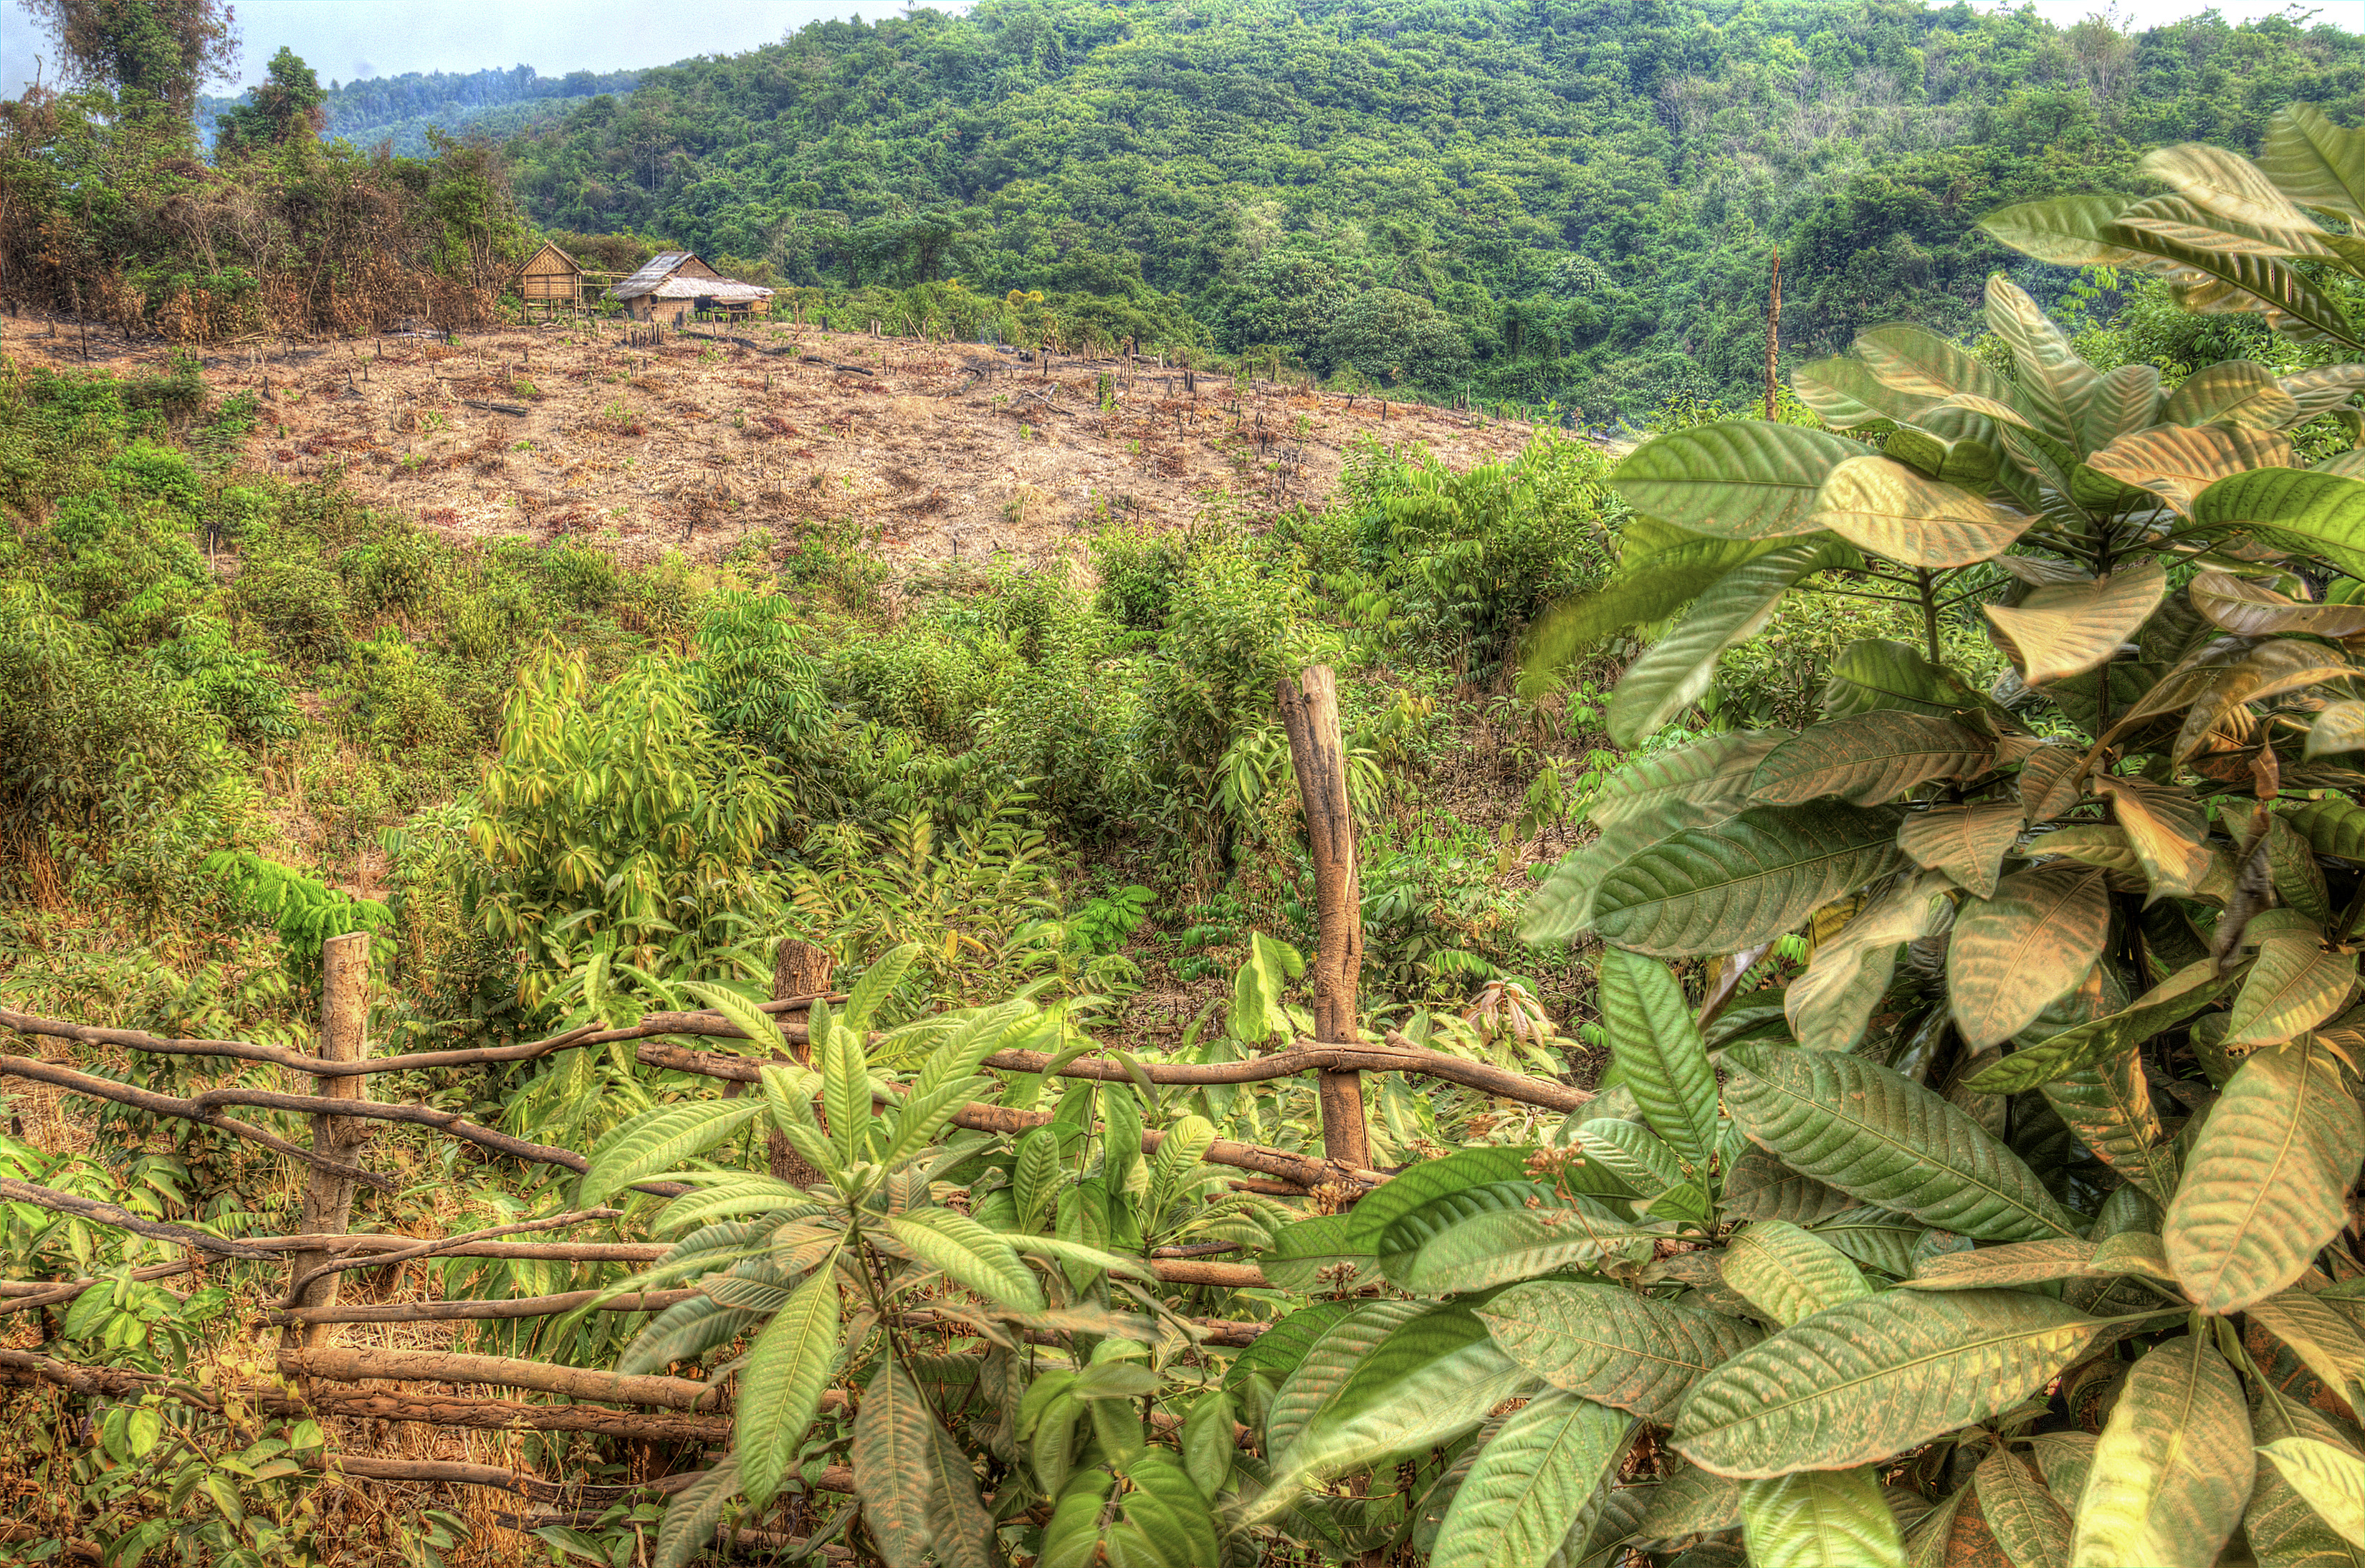 Montanyard Krung farm slash and burn for planting dryland rice.